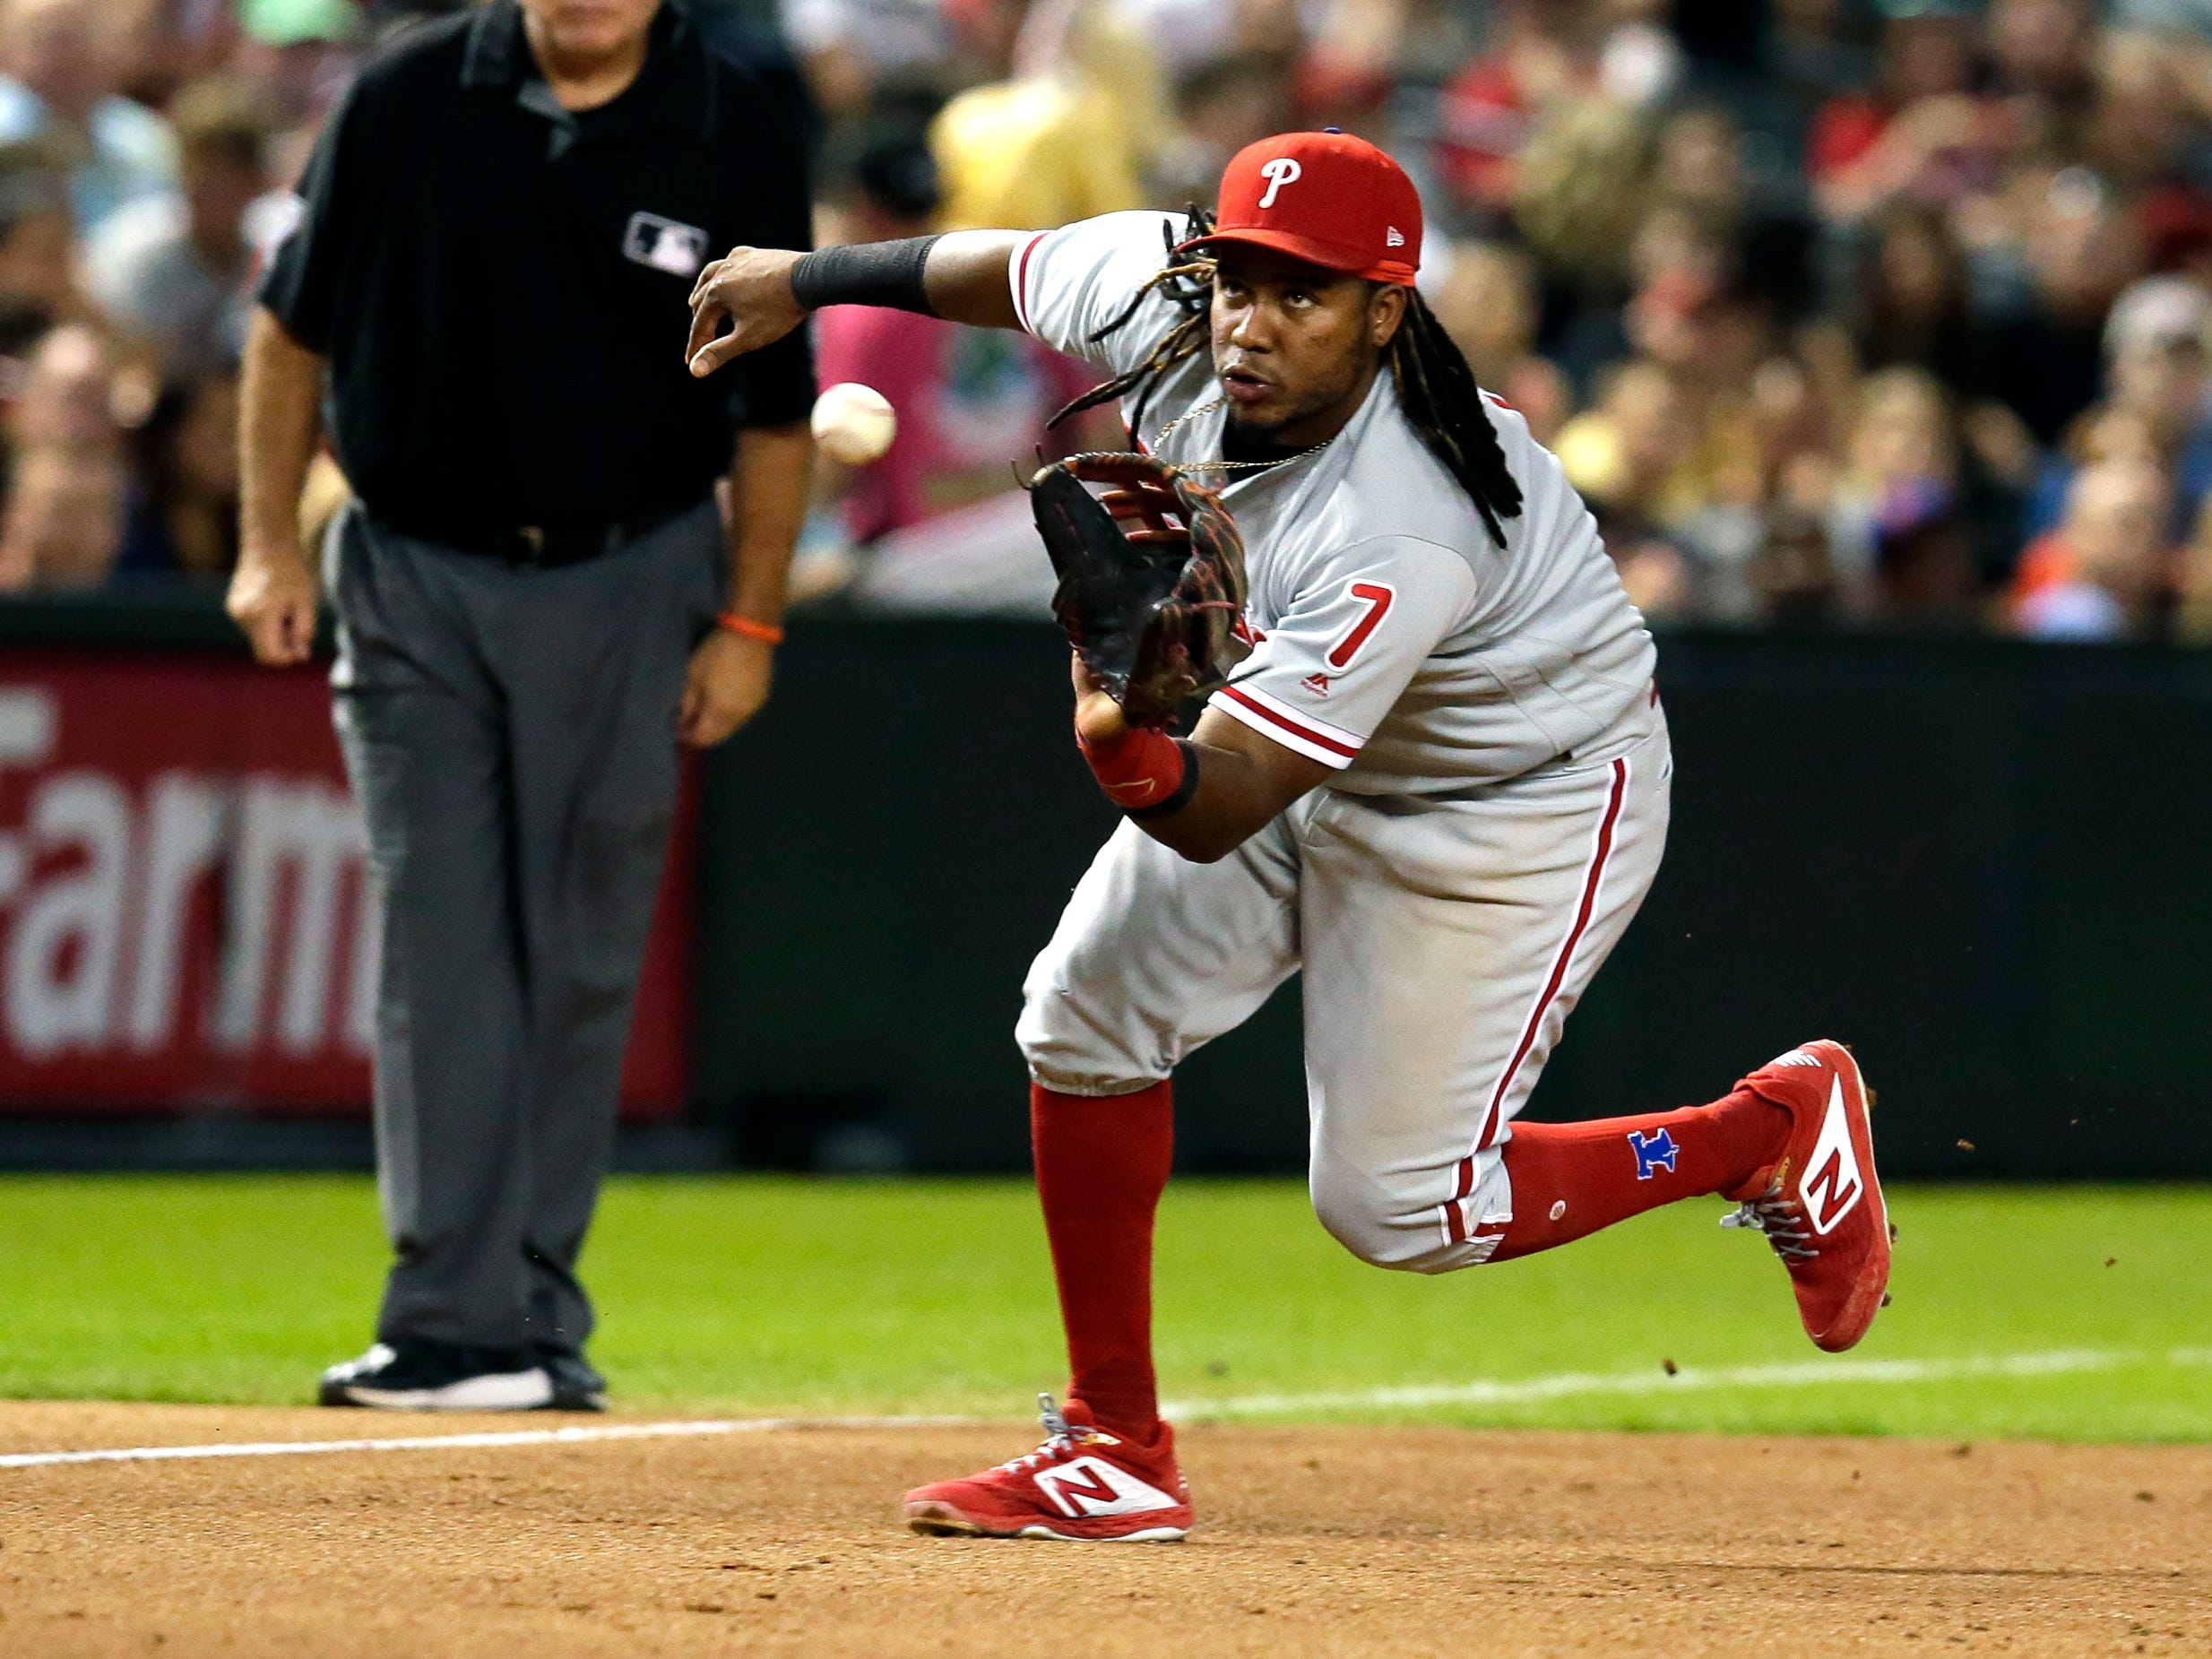 Philadelphia Phillies third baseman Maikel Franco (7) in the first inning during a baseball game against the Arizona Diamondbacks, Tuesday, Aug. 7, 2018, in Phoenix.